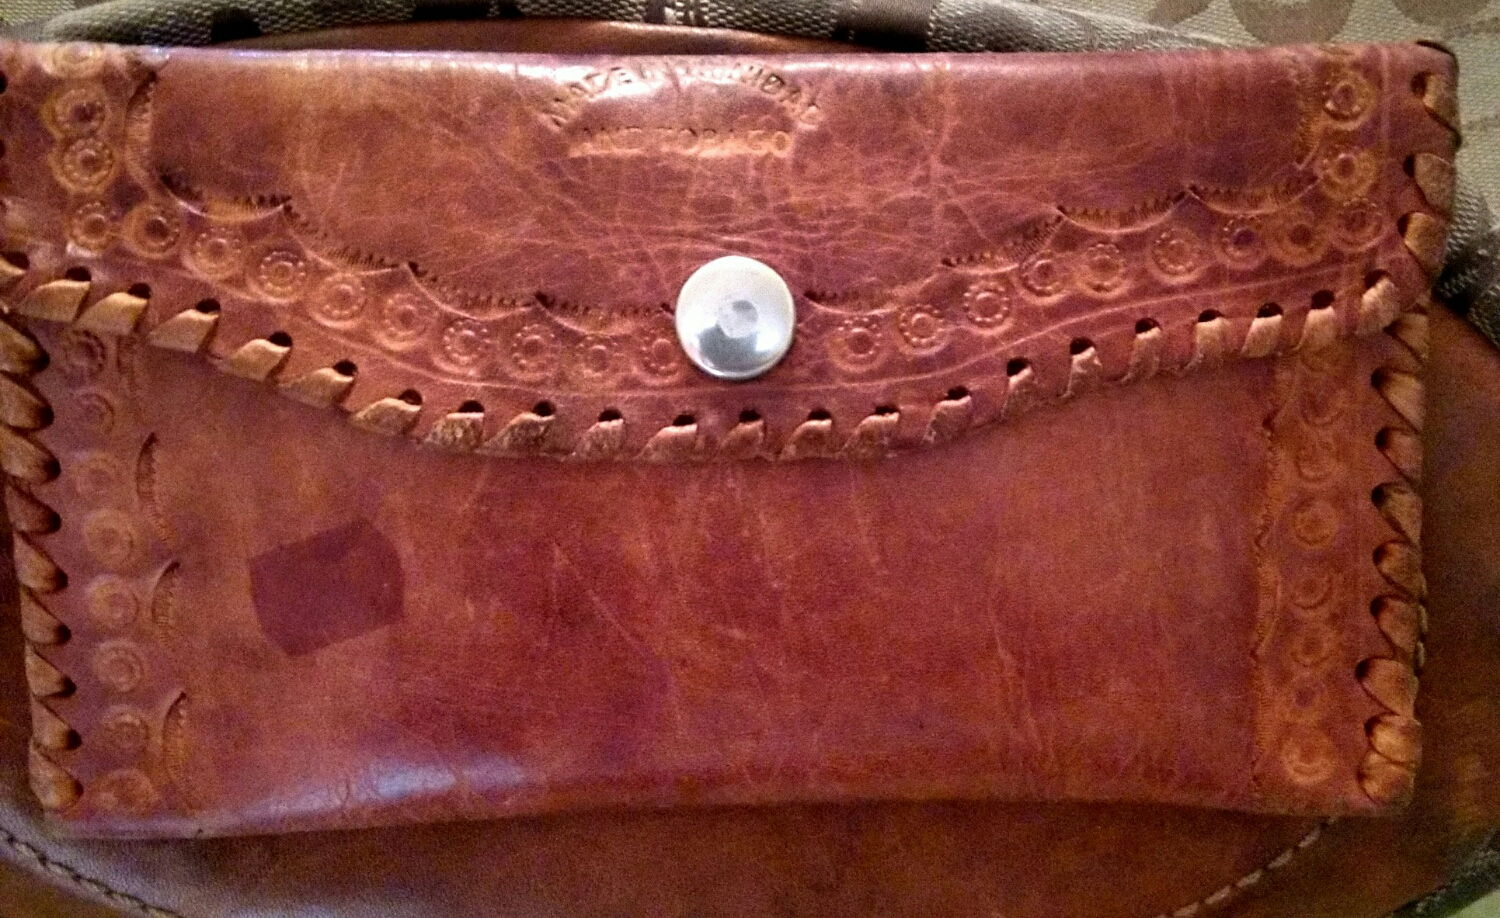 Leather wallet purchased in 2009 in Buccoo Reef Tobago